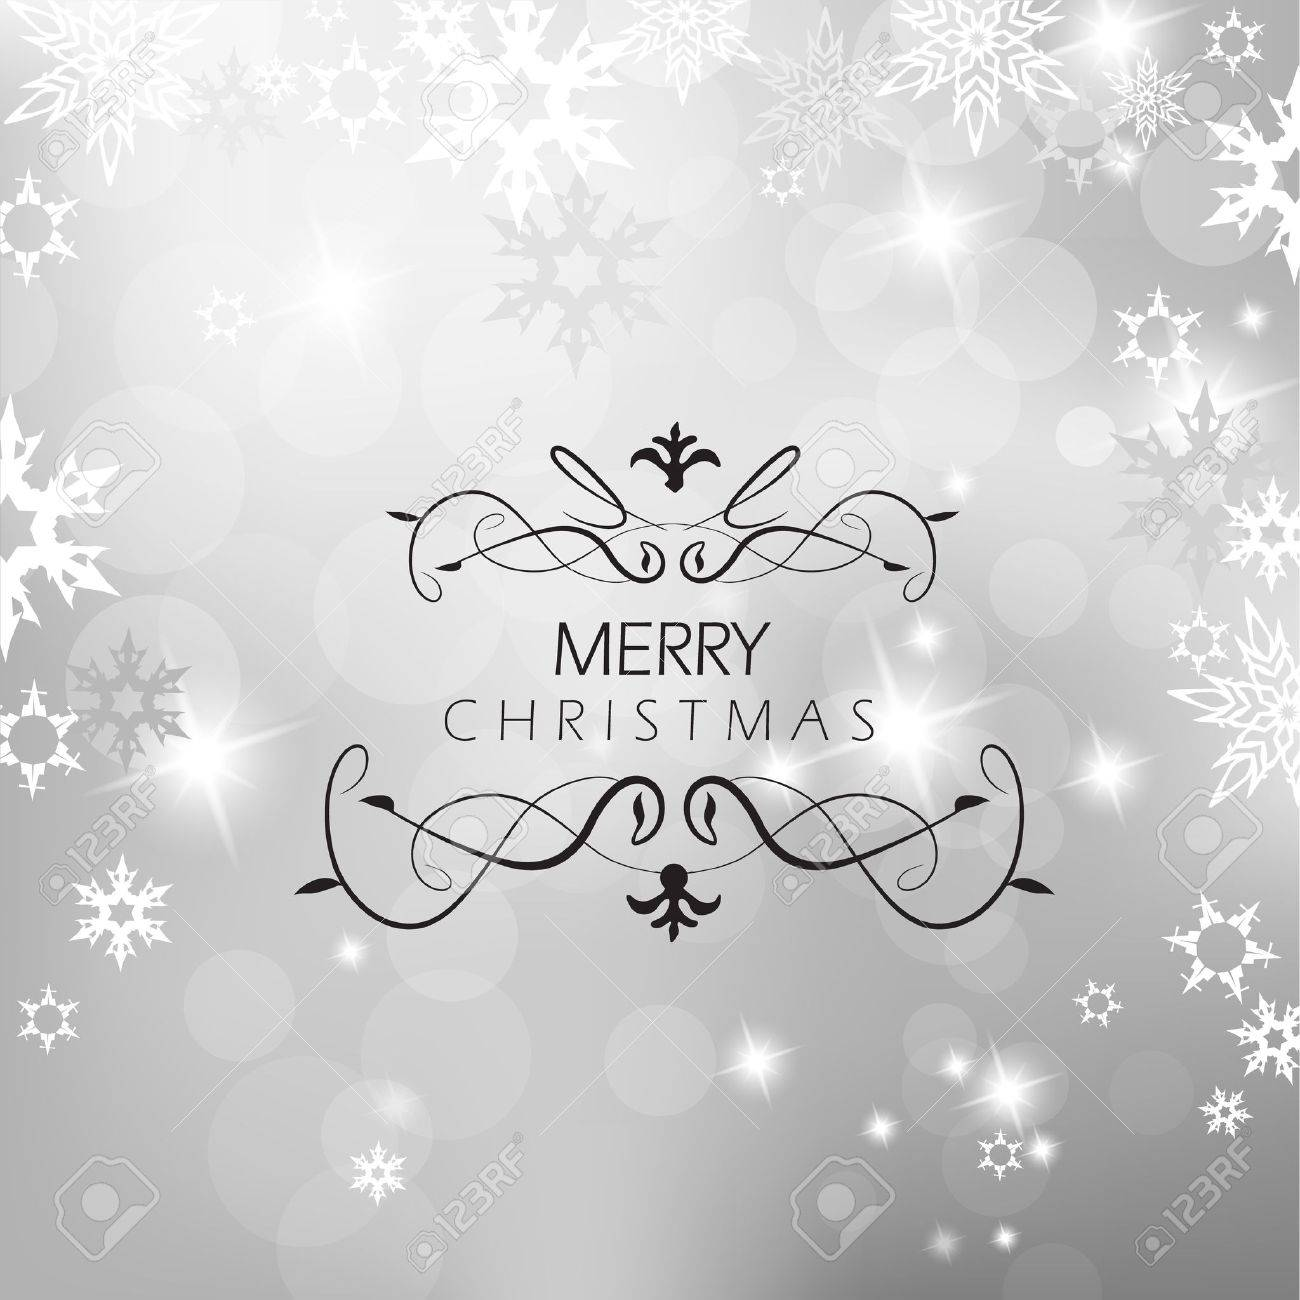 Christmas silver background with snow flakes. - 11254651